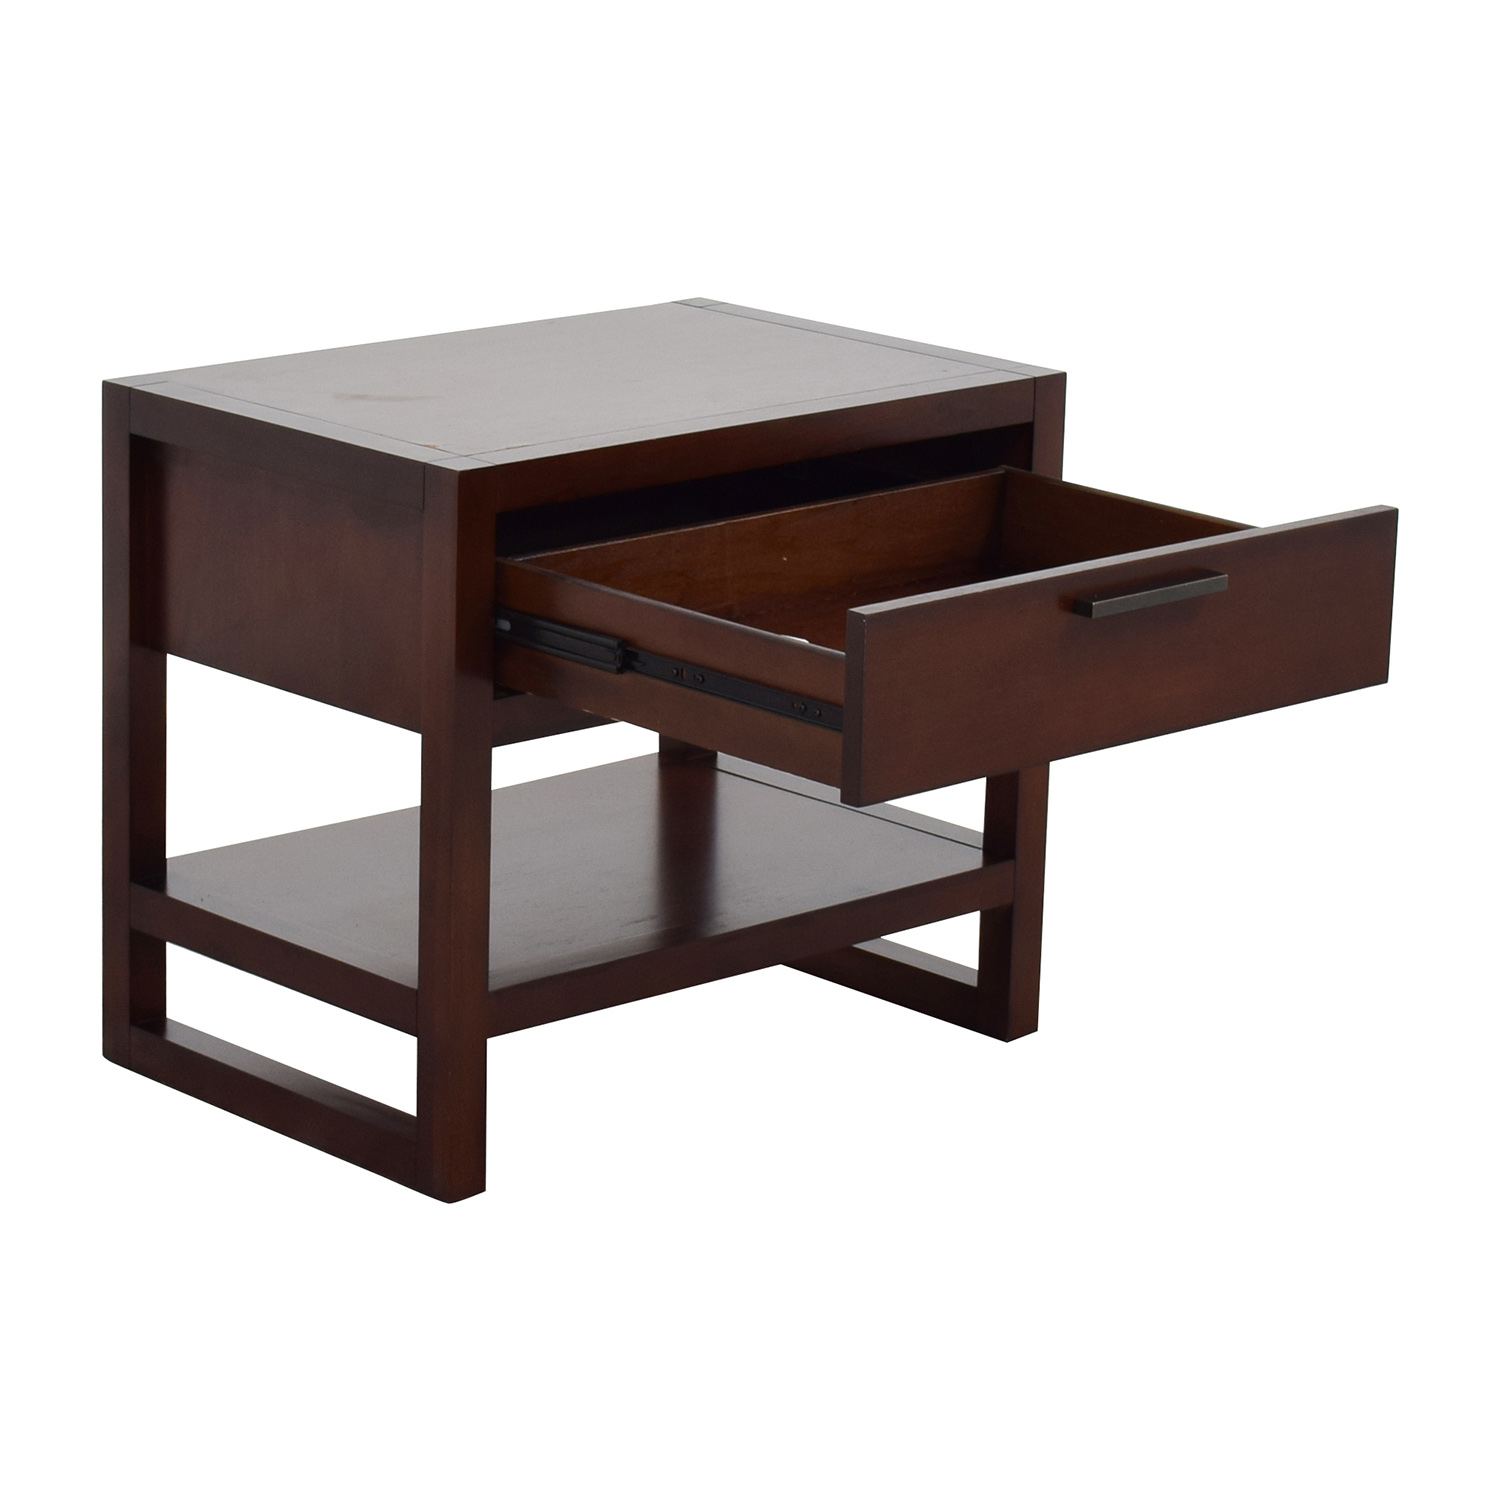 88 Off Macy S Macy S Battery Park Night Stand Tables